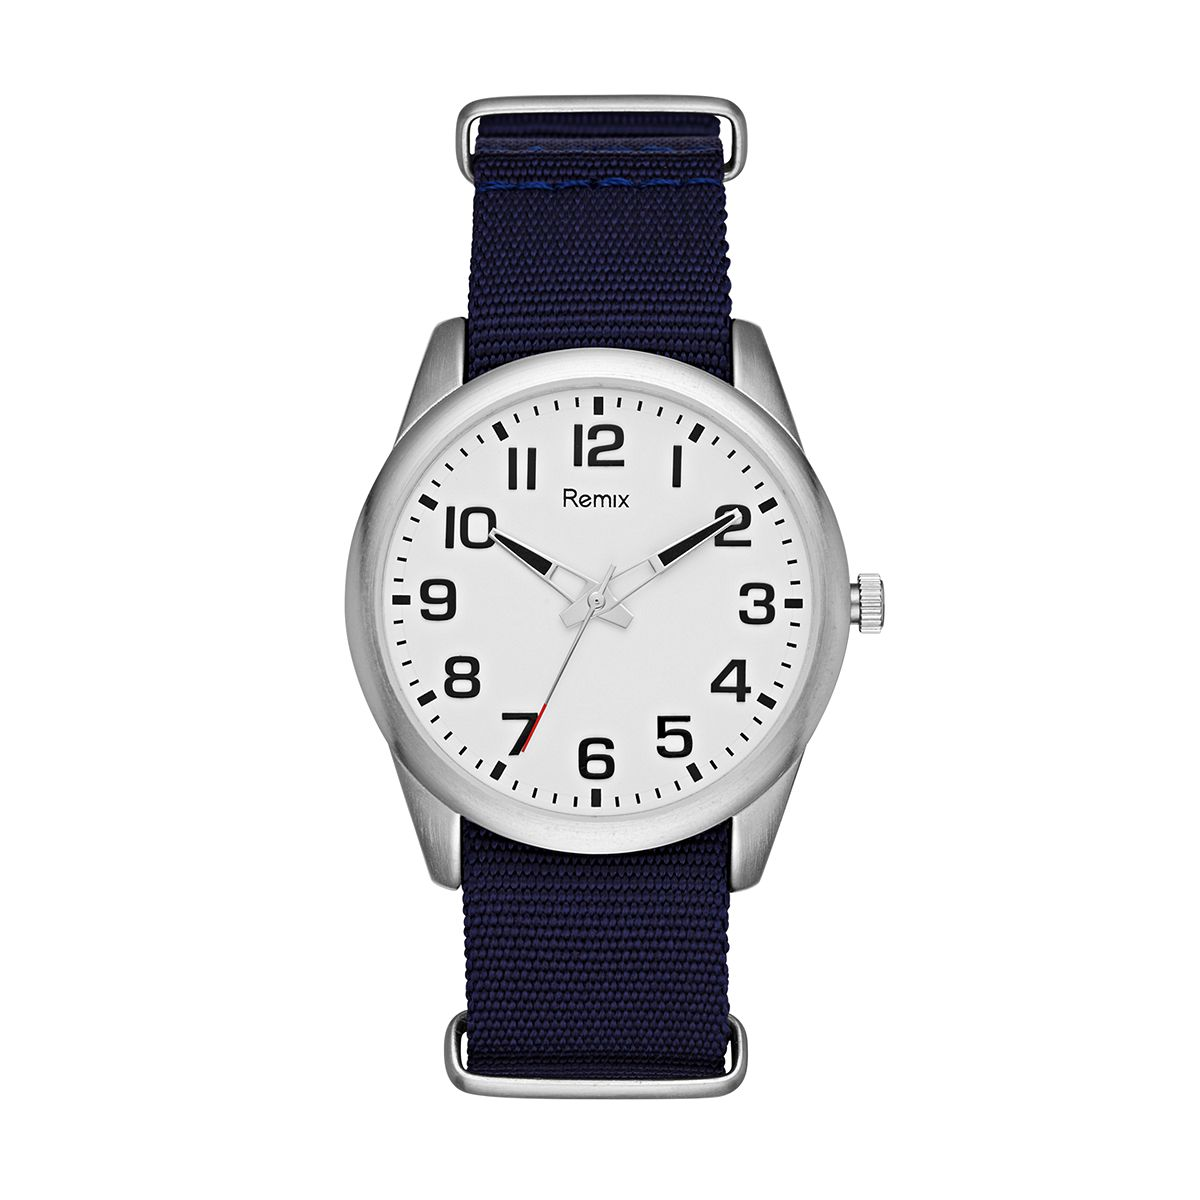 Navy Nylon Strap  / Promotional product fully customized